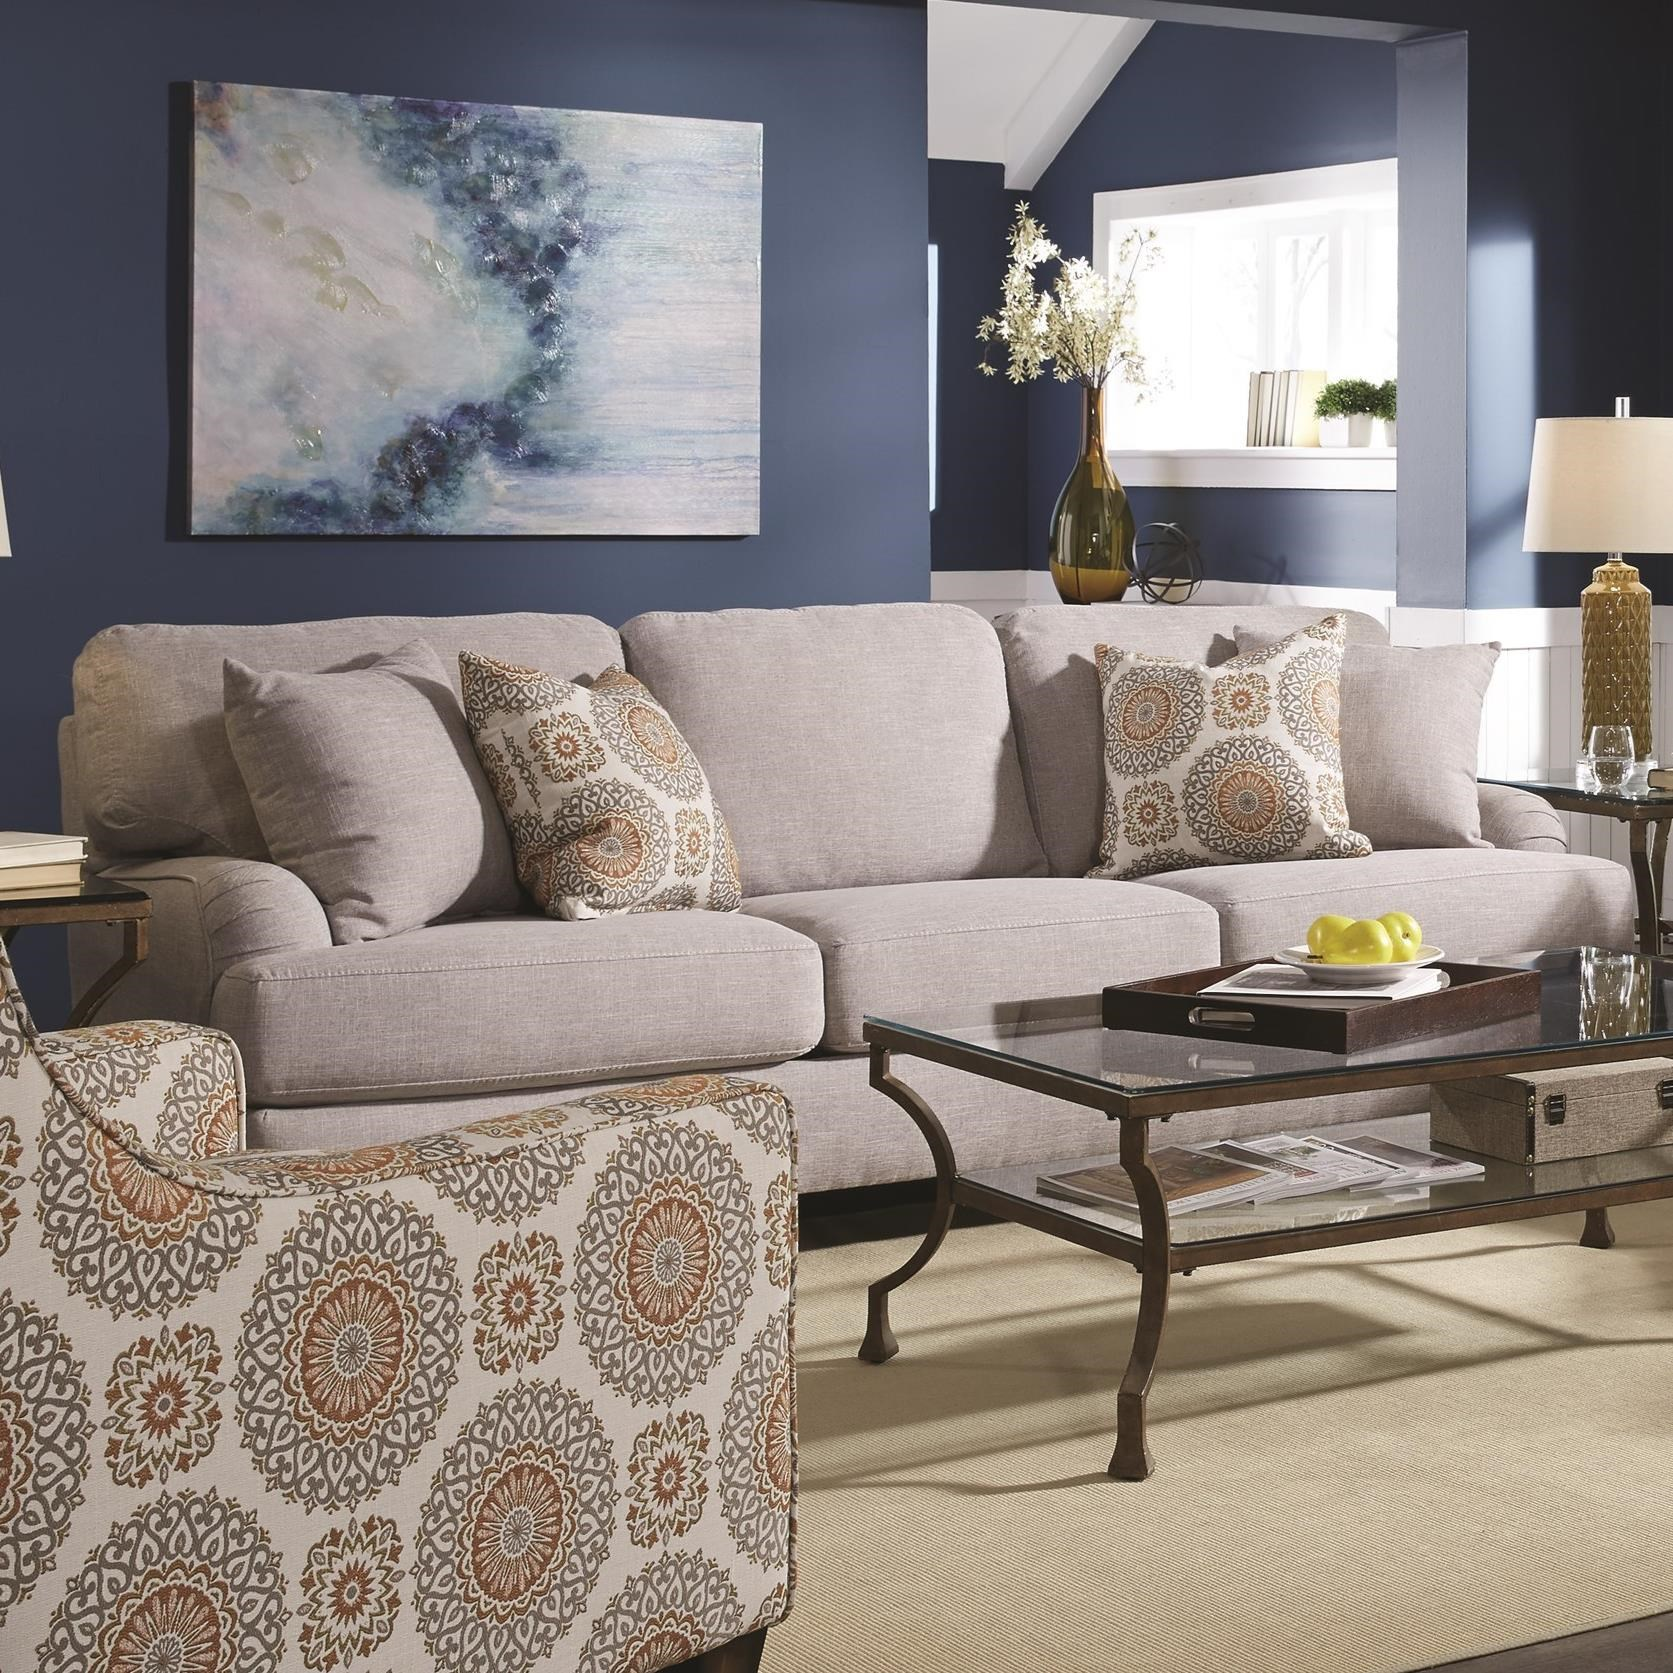 Brianna Sofa by Franklin at Furniture Superstore - Rochester, MN